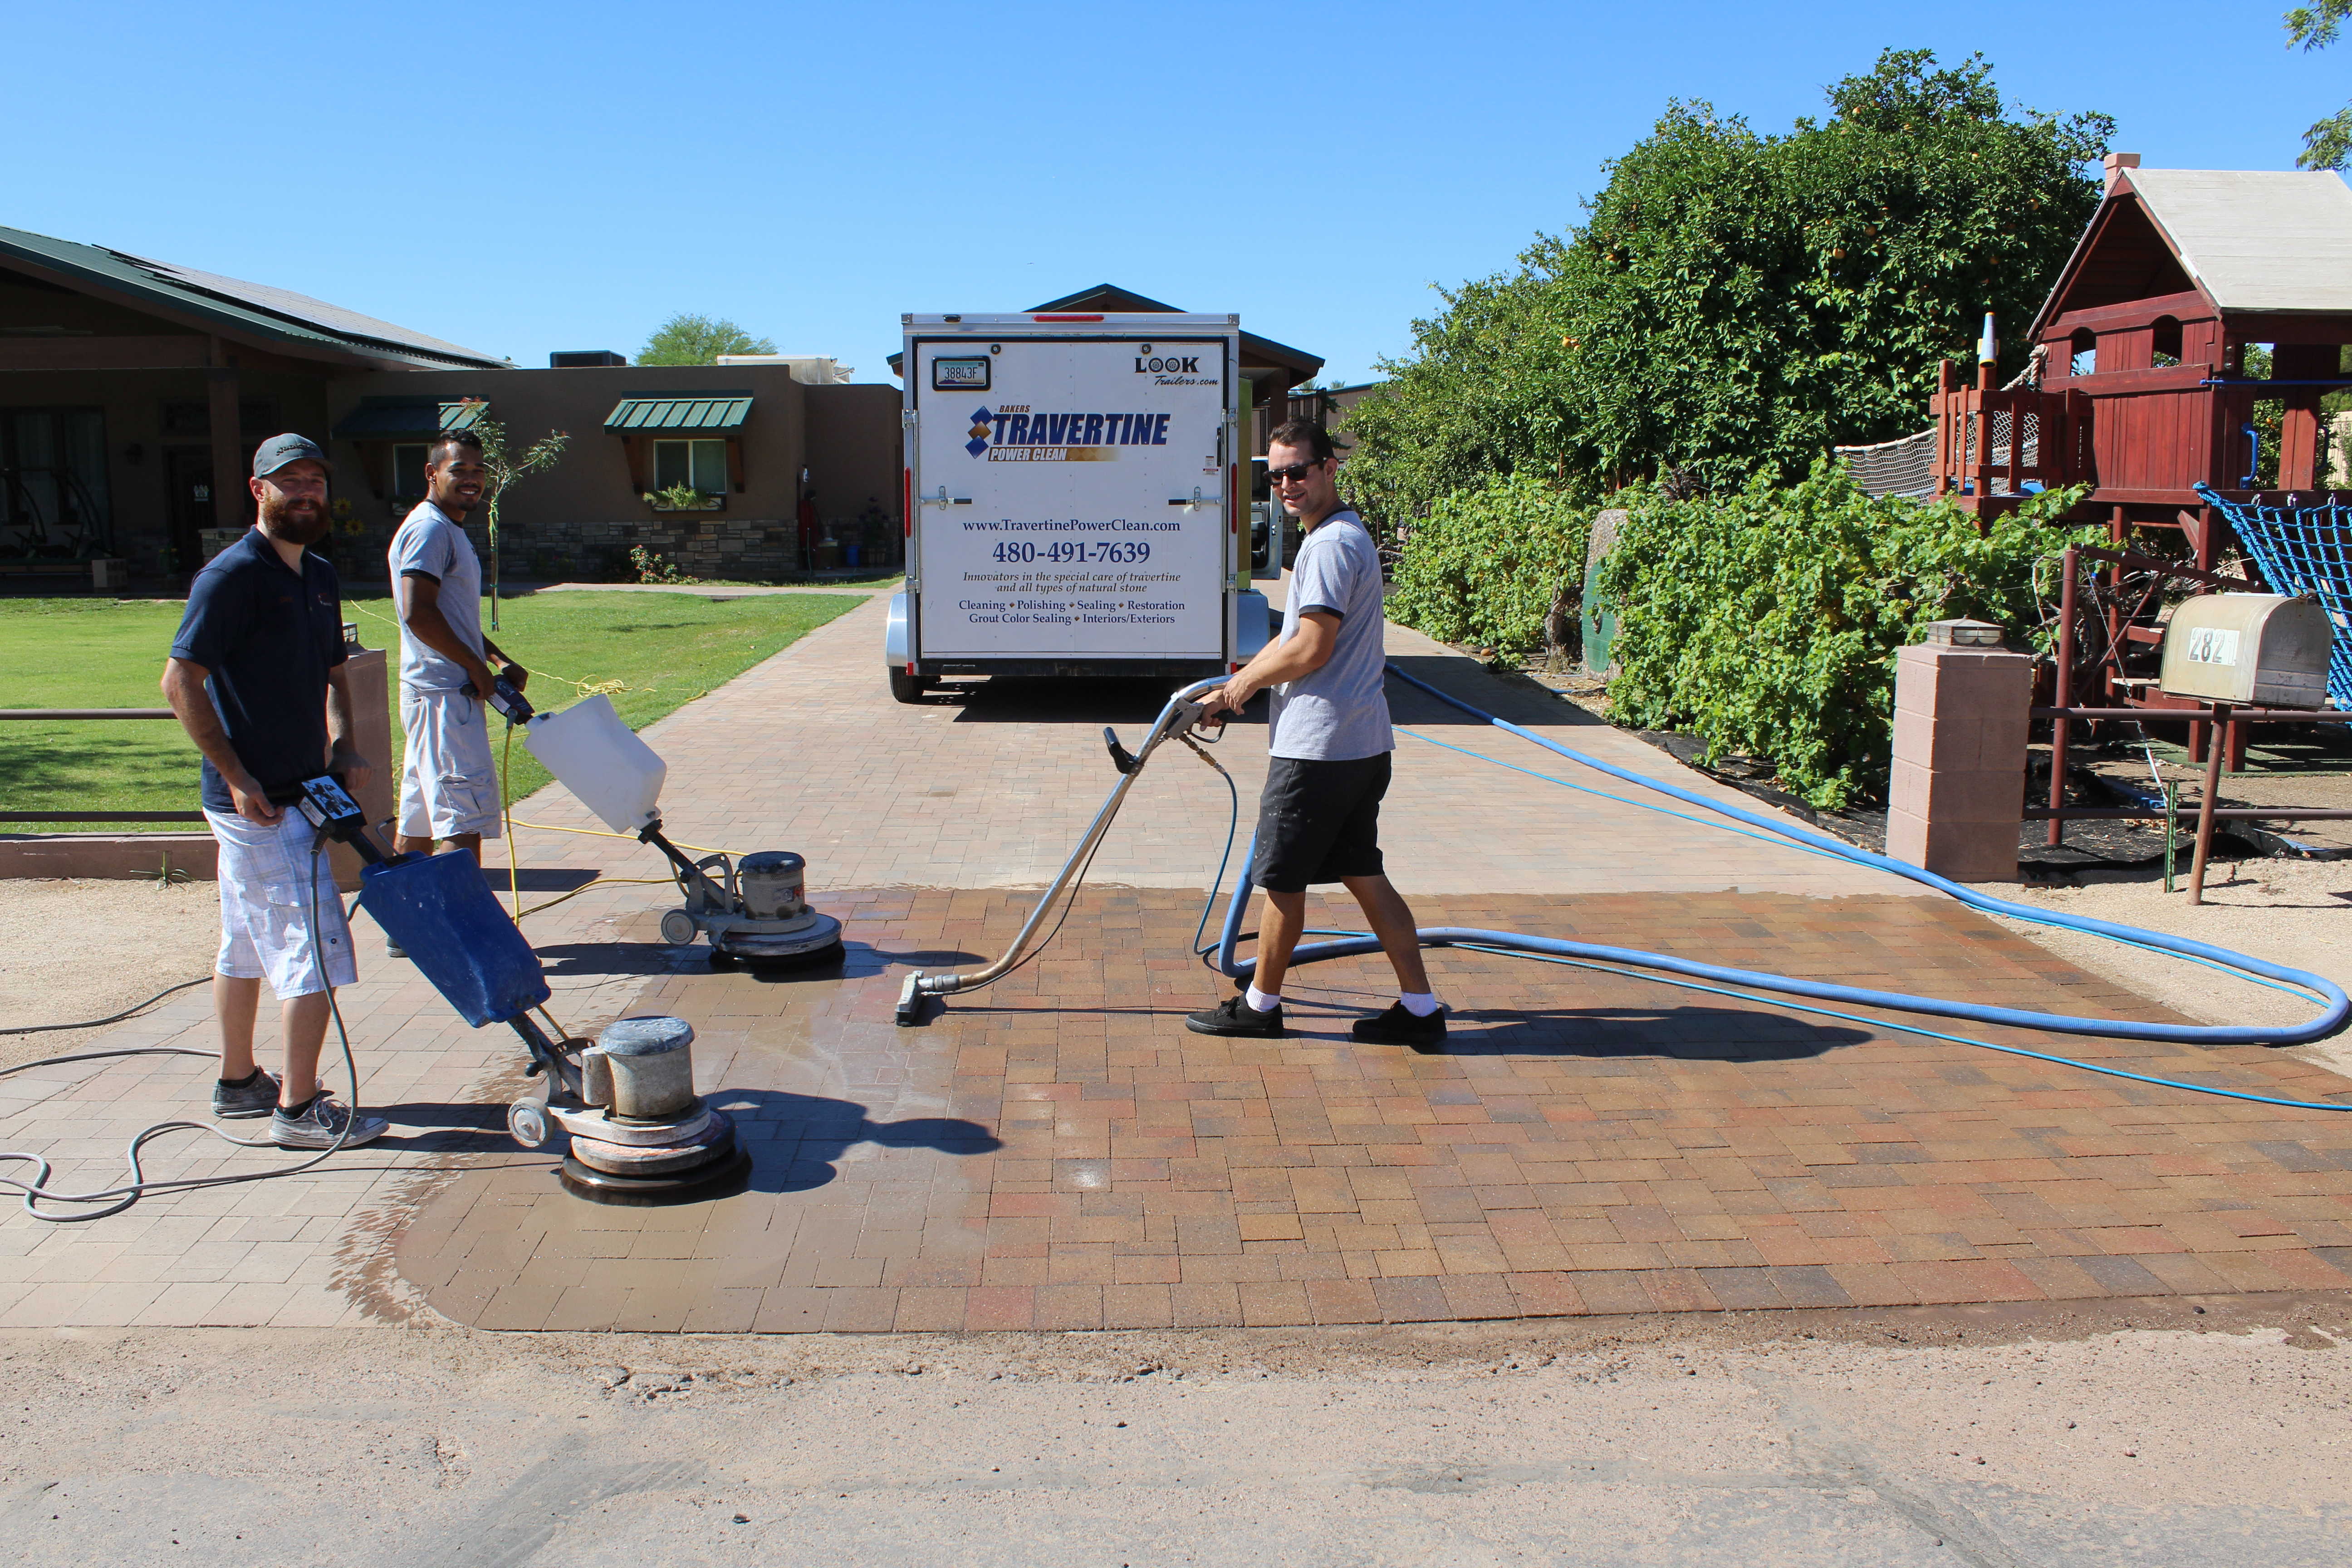 Cleaning concrete pavers requires care to avoid damage